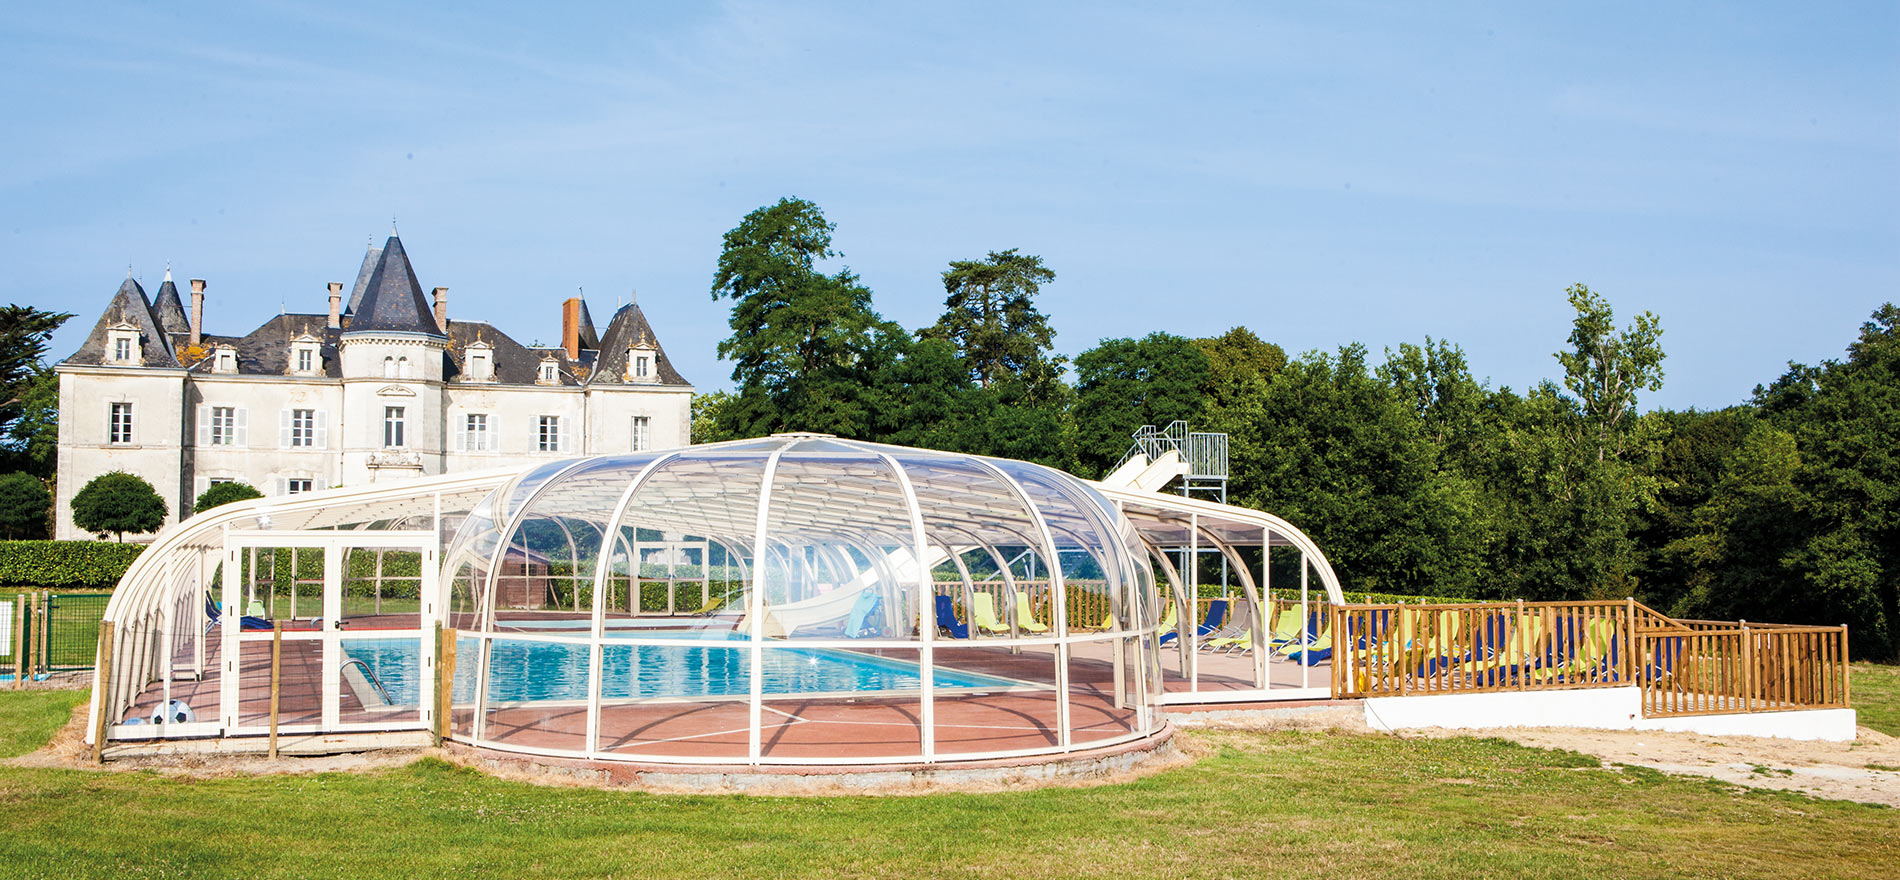 Kasteelcampings in de Loirestreek